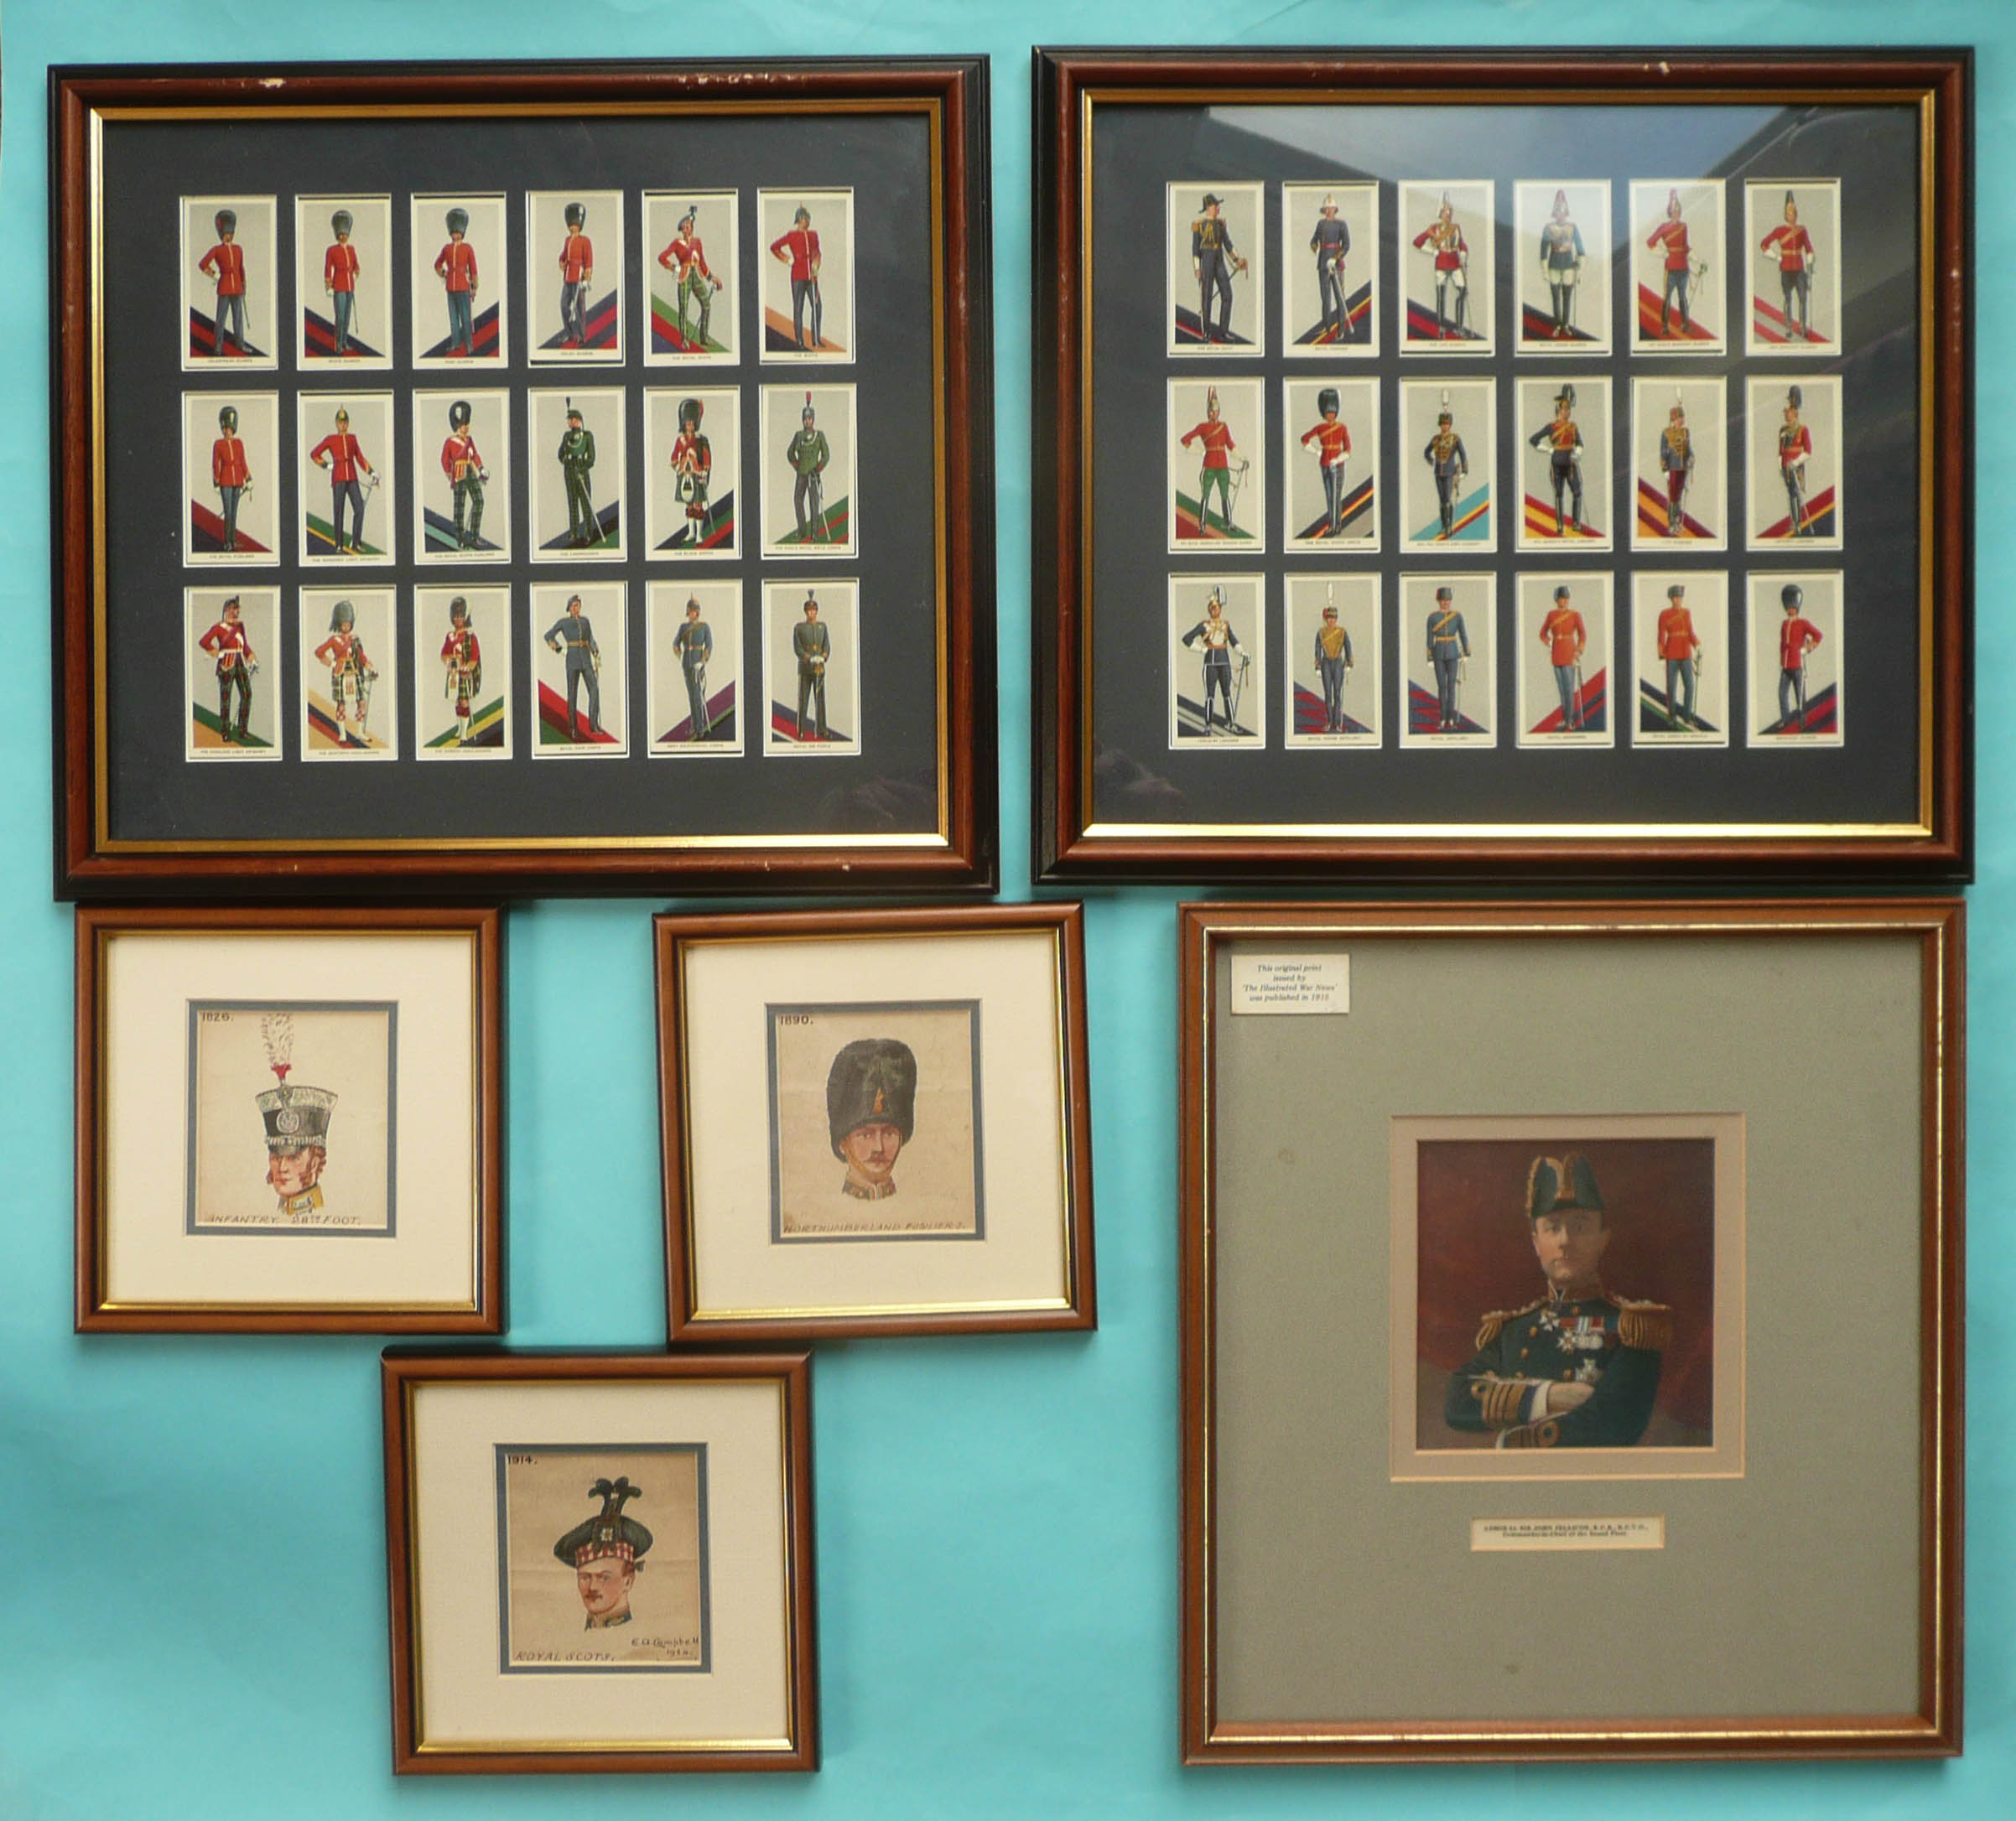 Lot 44 - Three small watercolours by E.A. Campbell dated 1924 depicting the headdress of the Royal Scots in